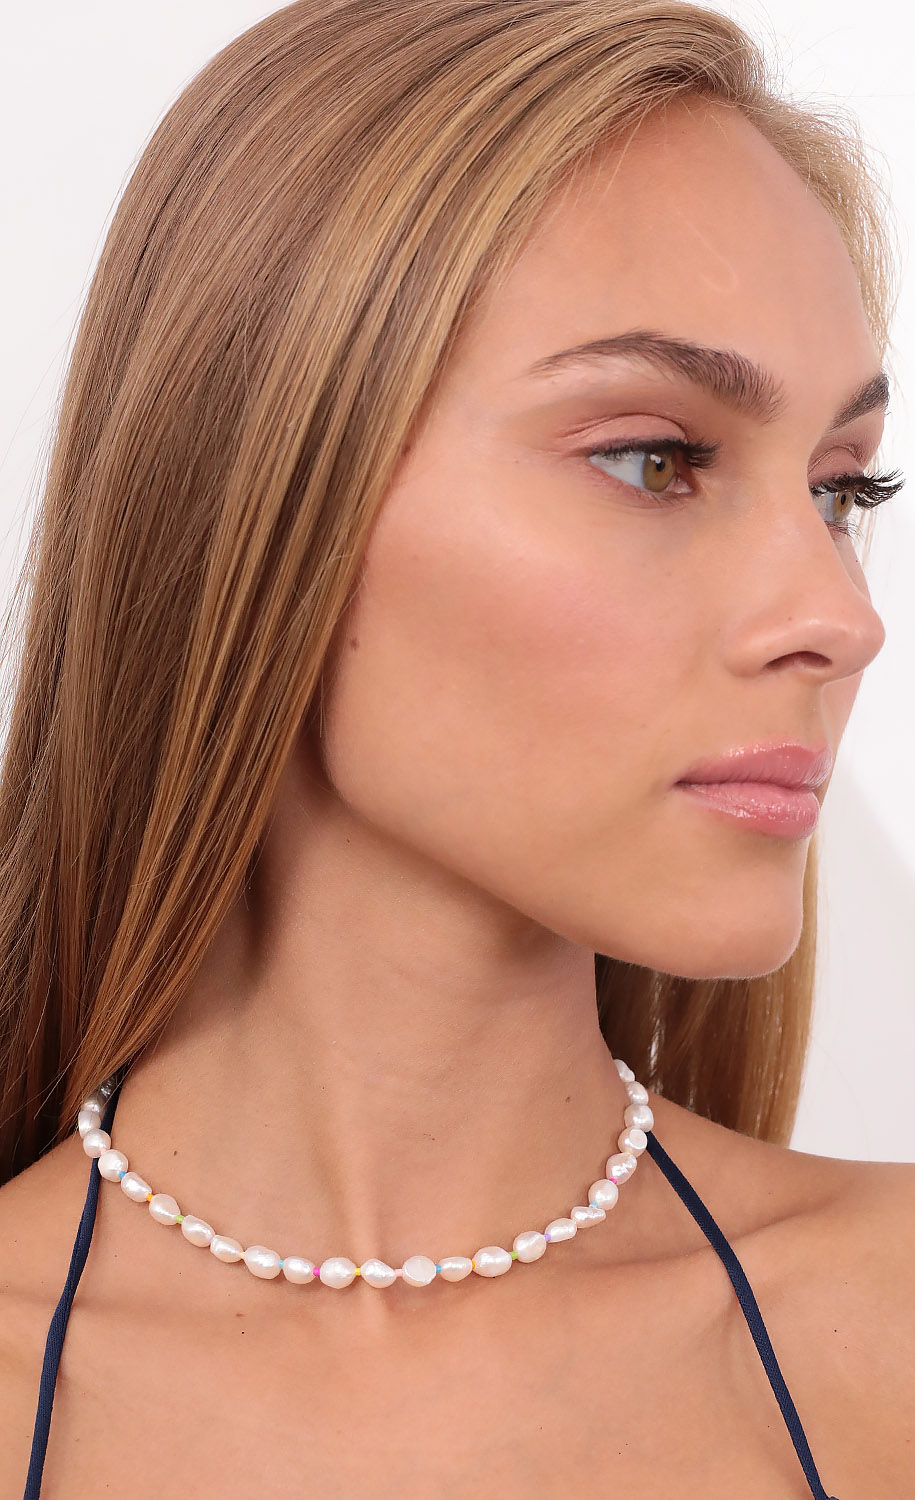 For The Love of Pearls Necklace